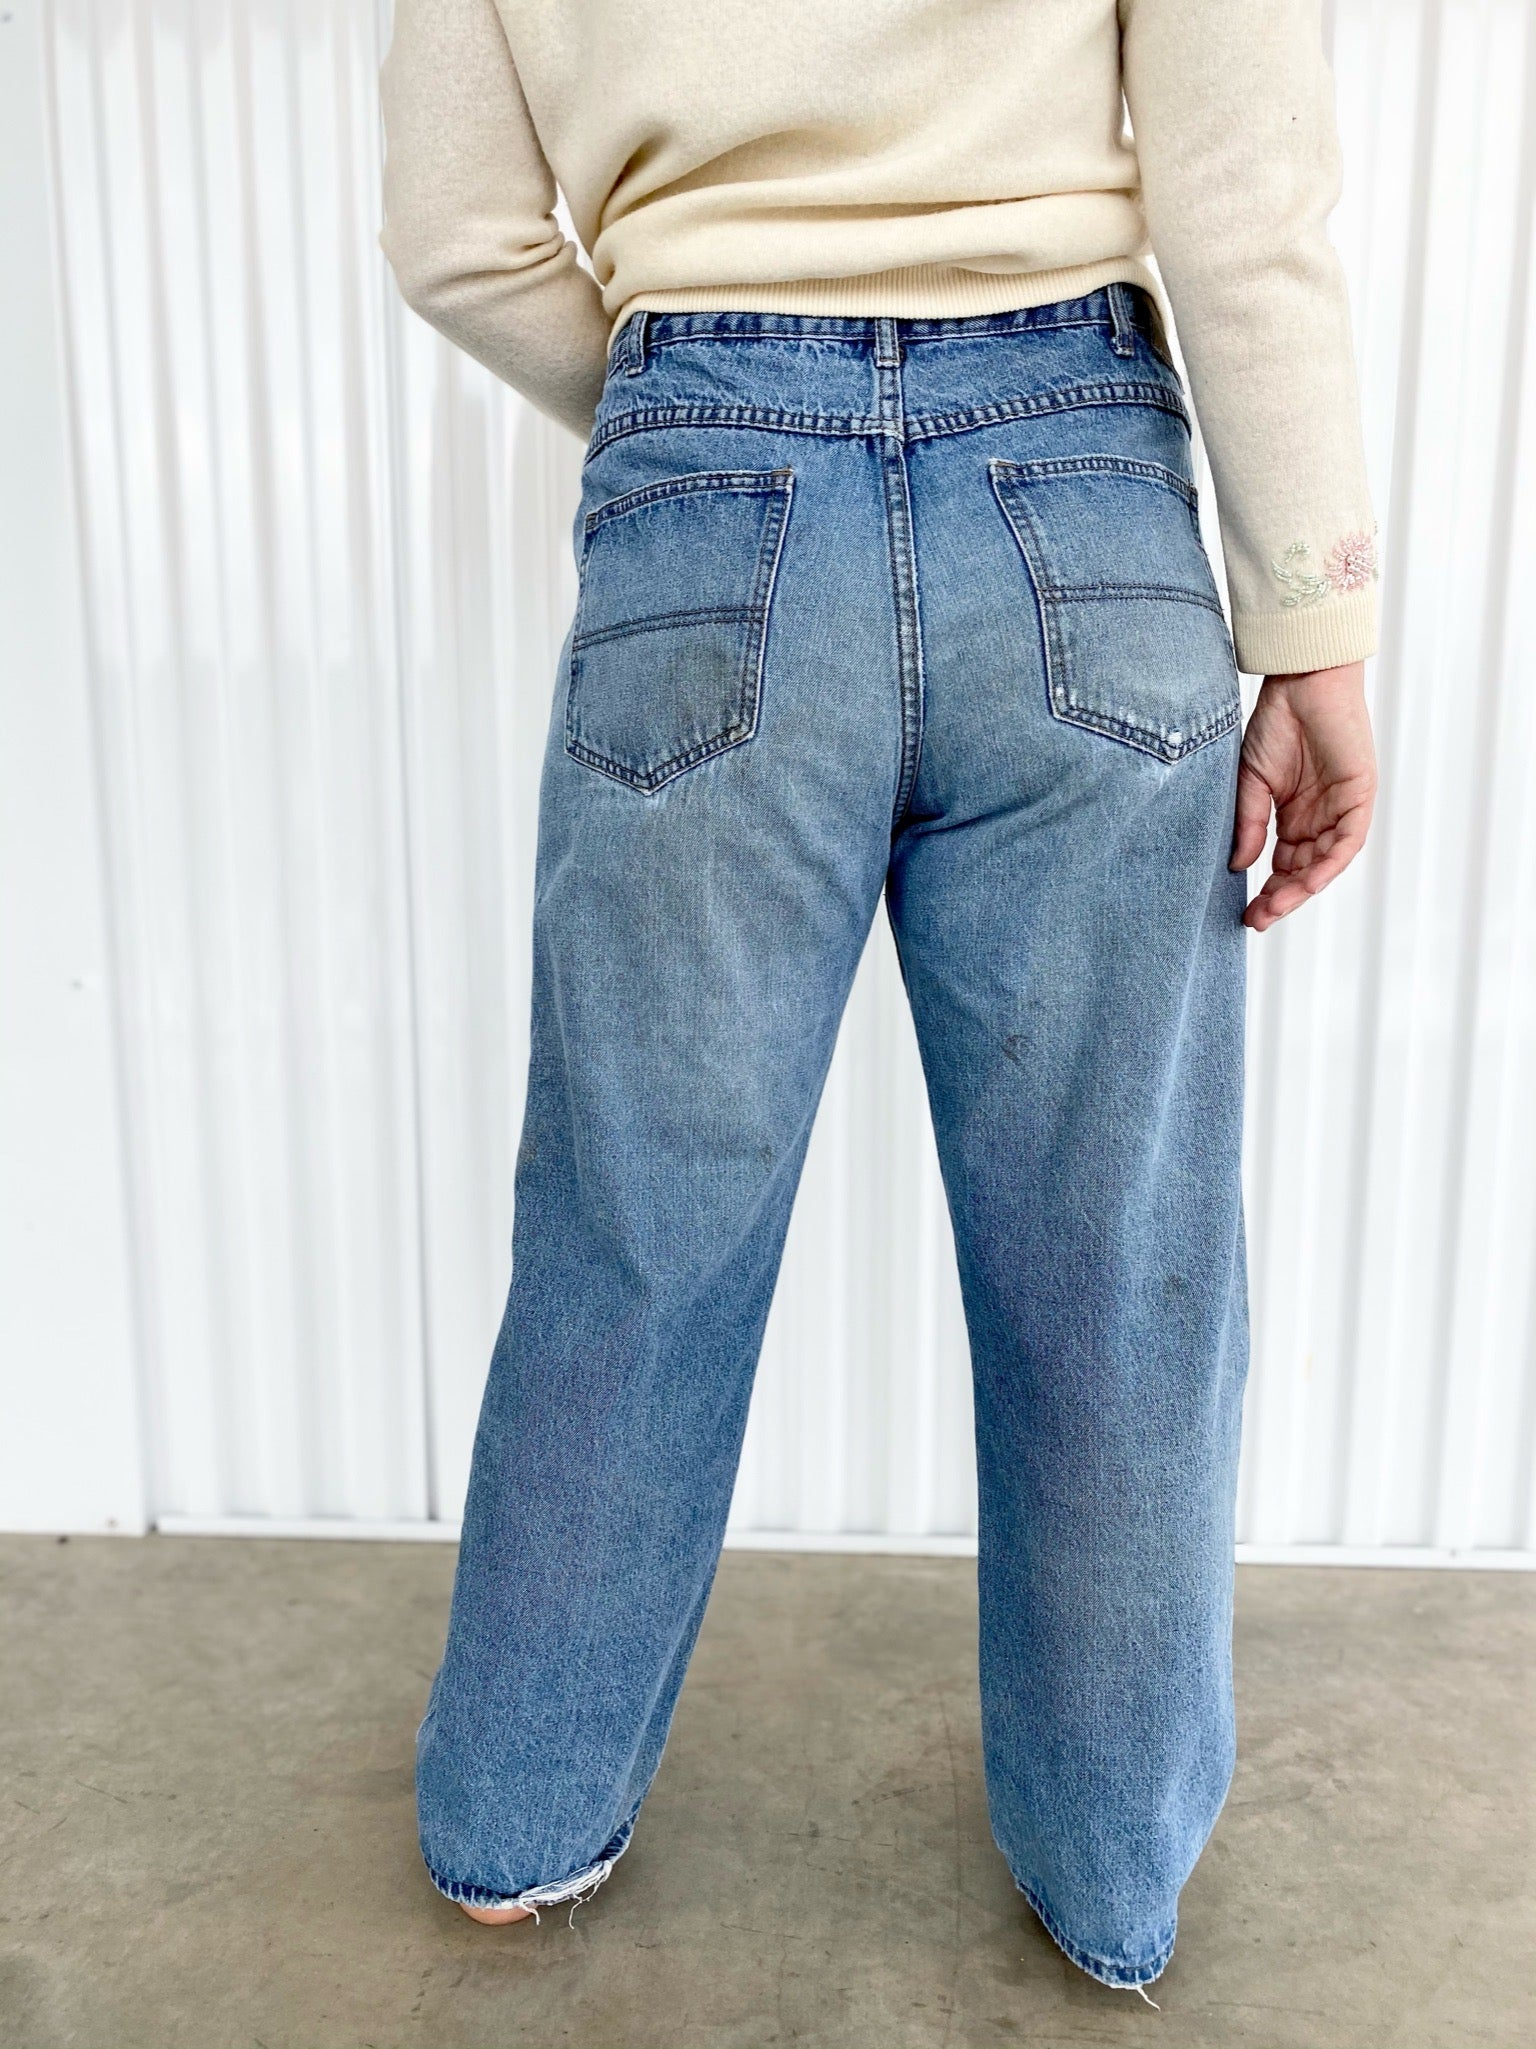 Field N Forest Distressed Jeans (34)